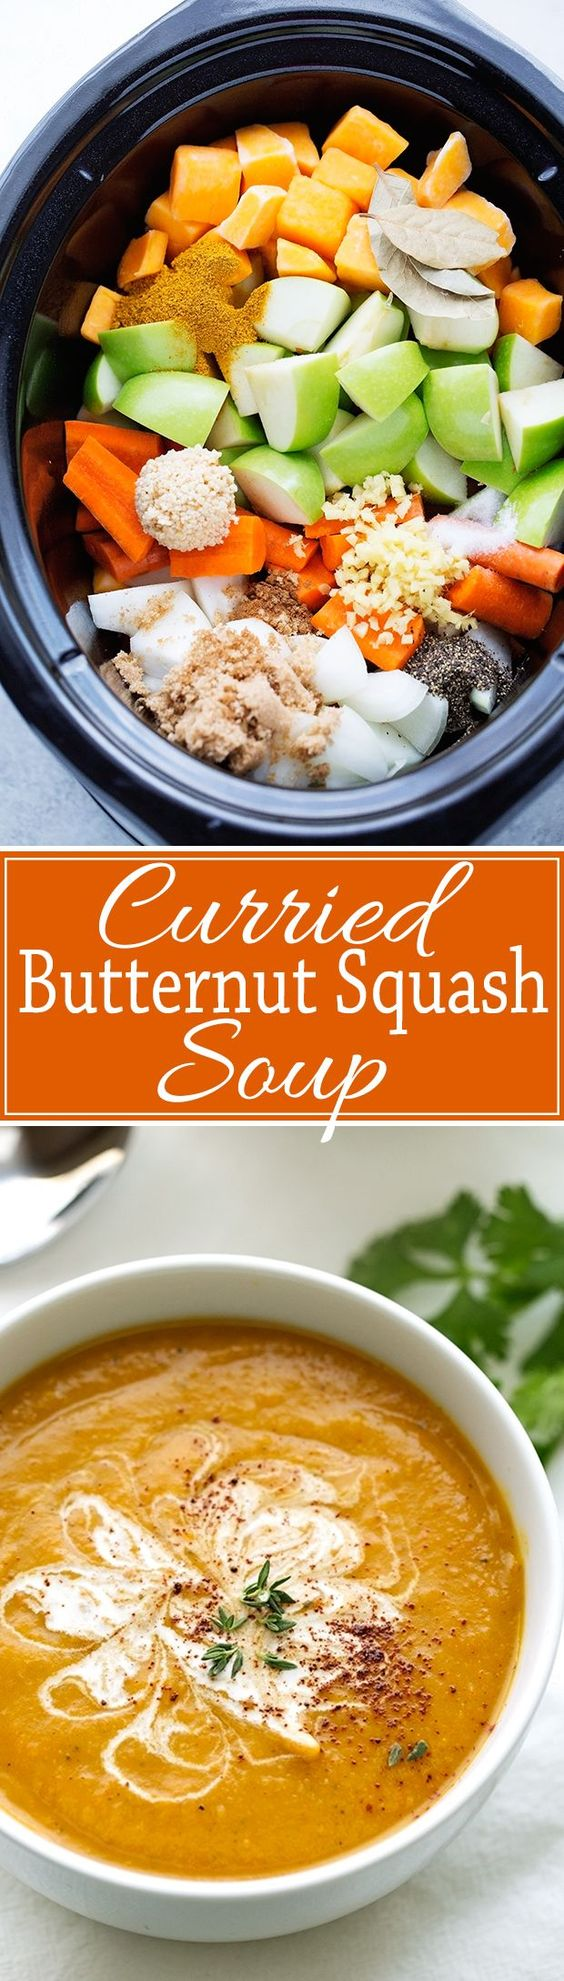 Curried butternut squash soup, Butternut squash soup and Squash